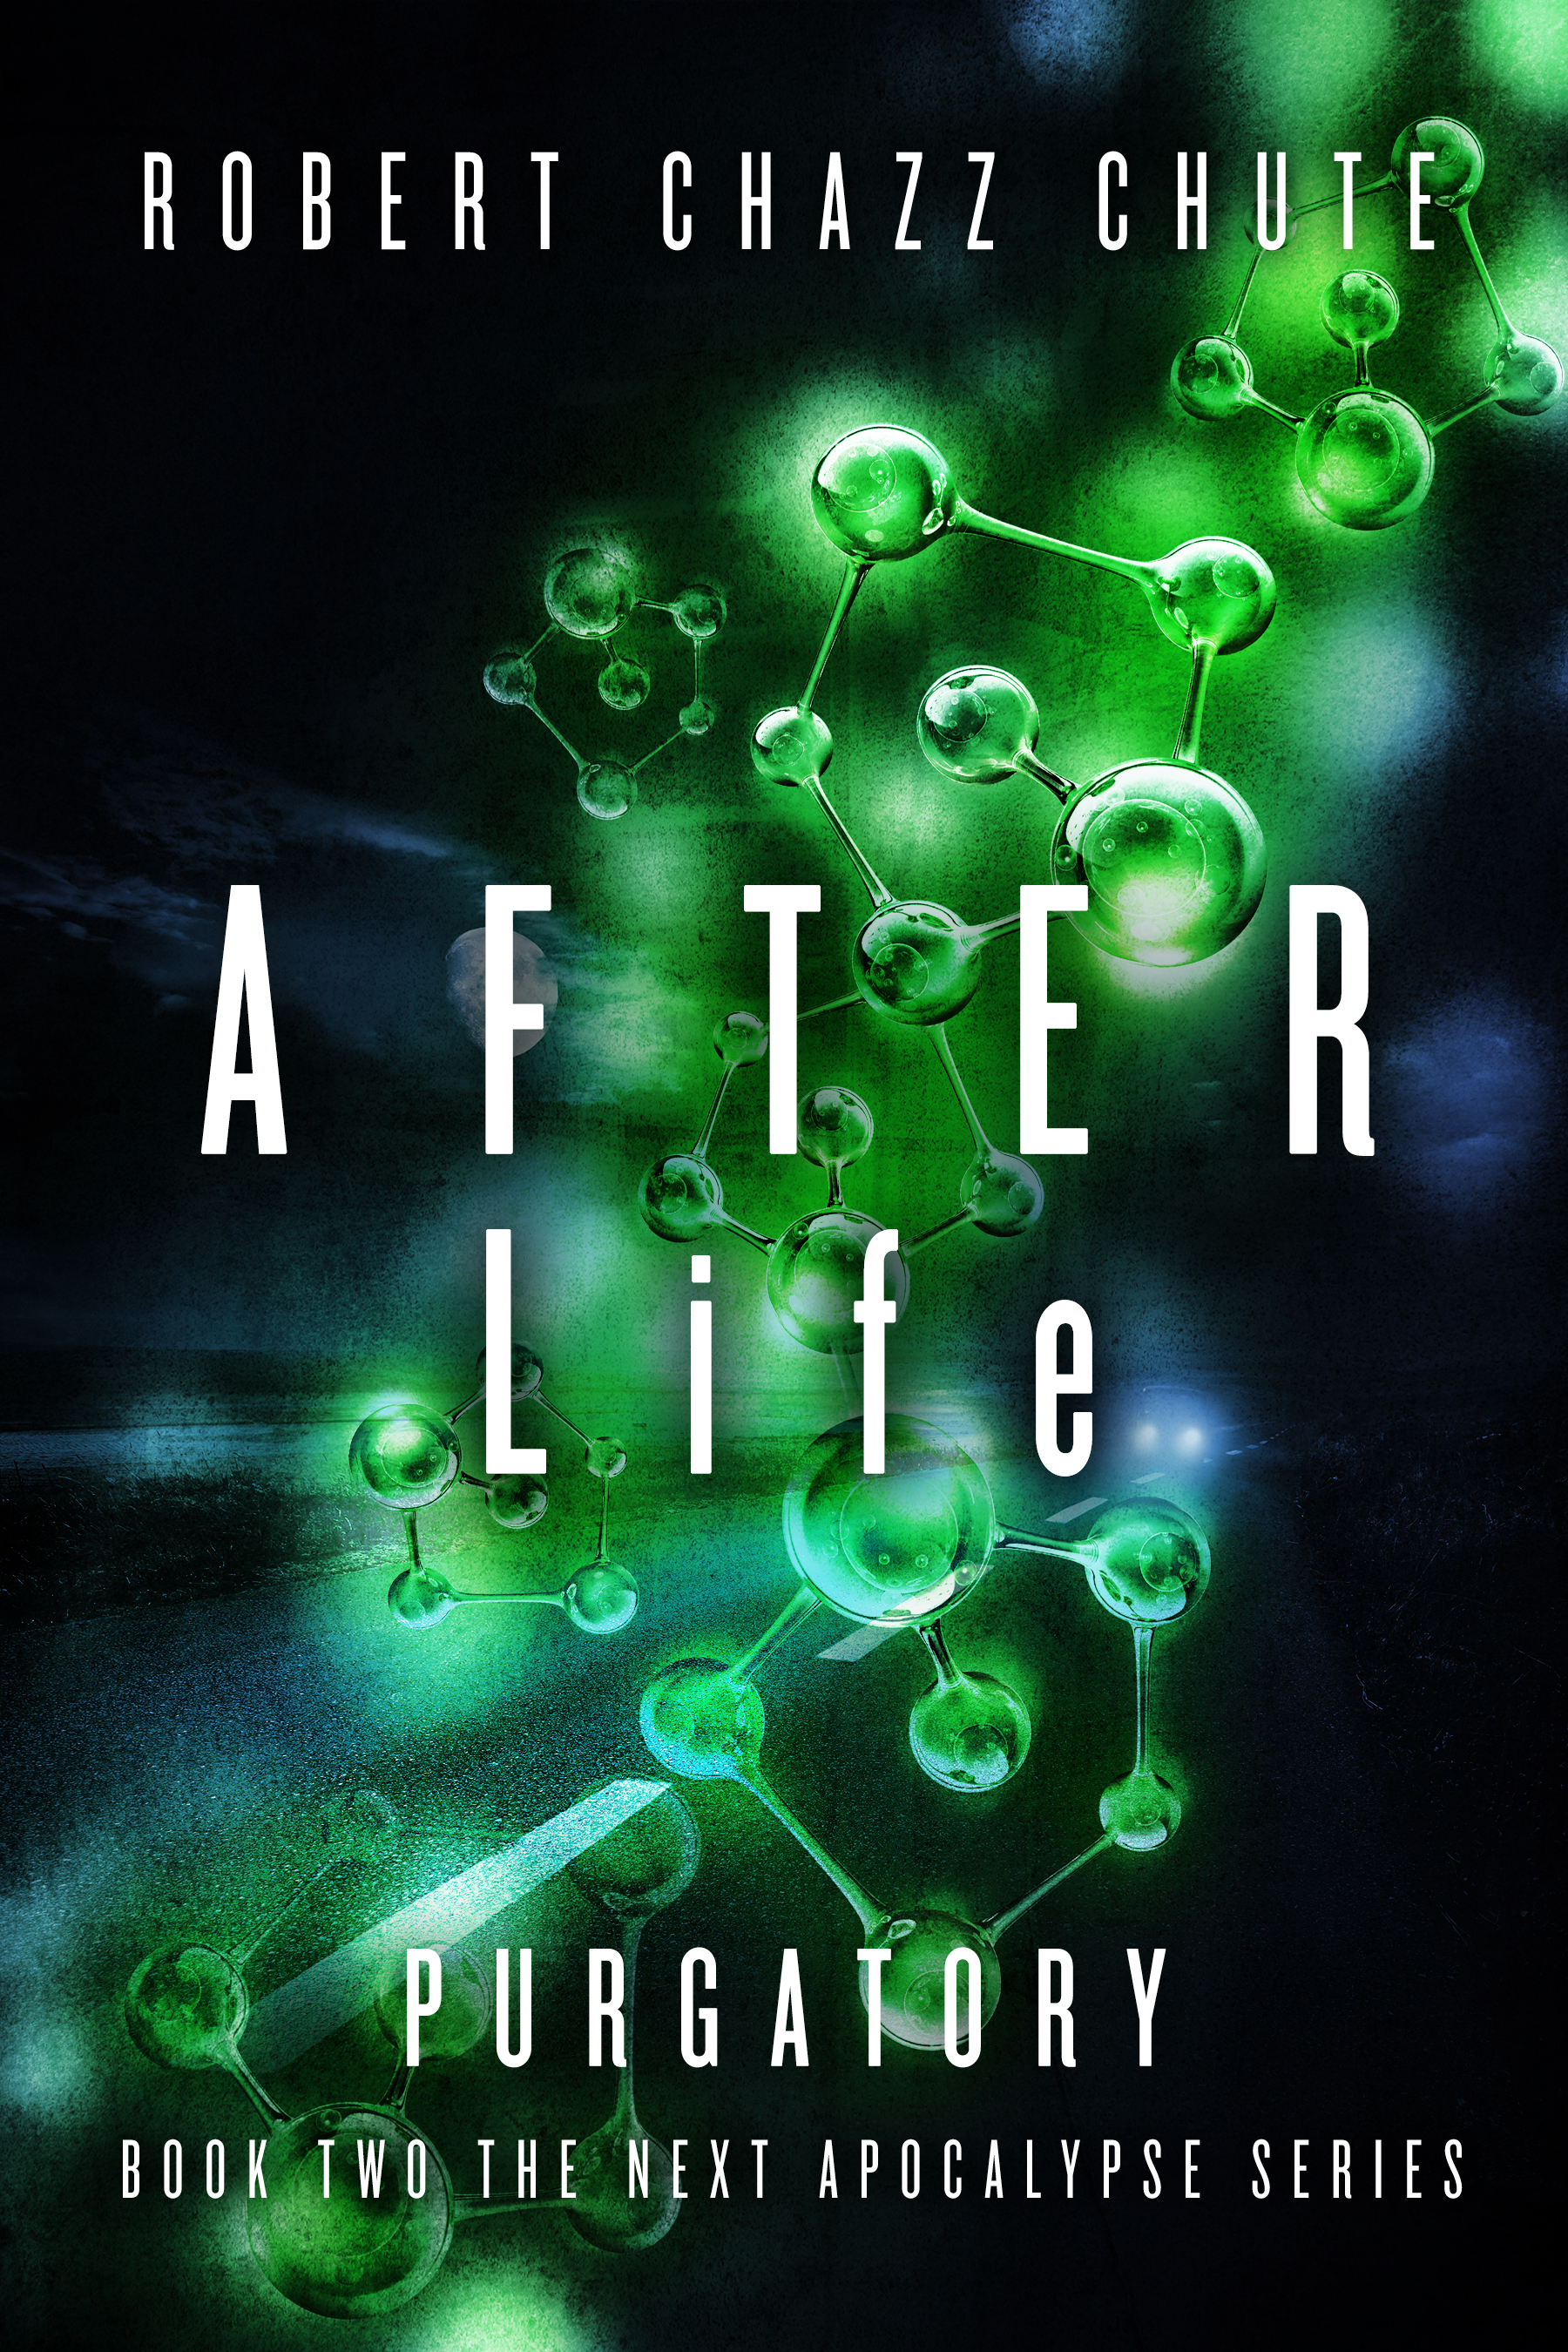 AFTER LIFE COVER 2